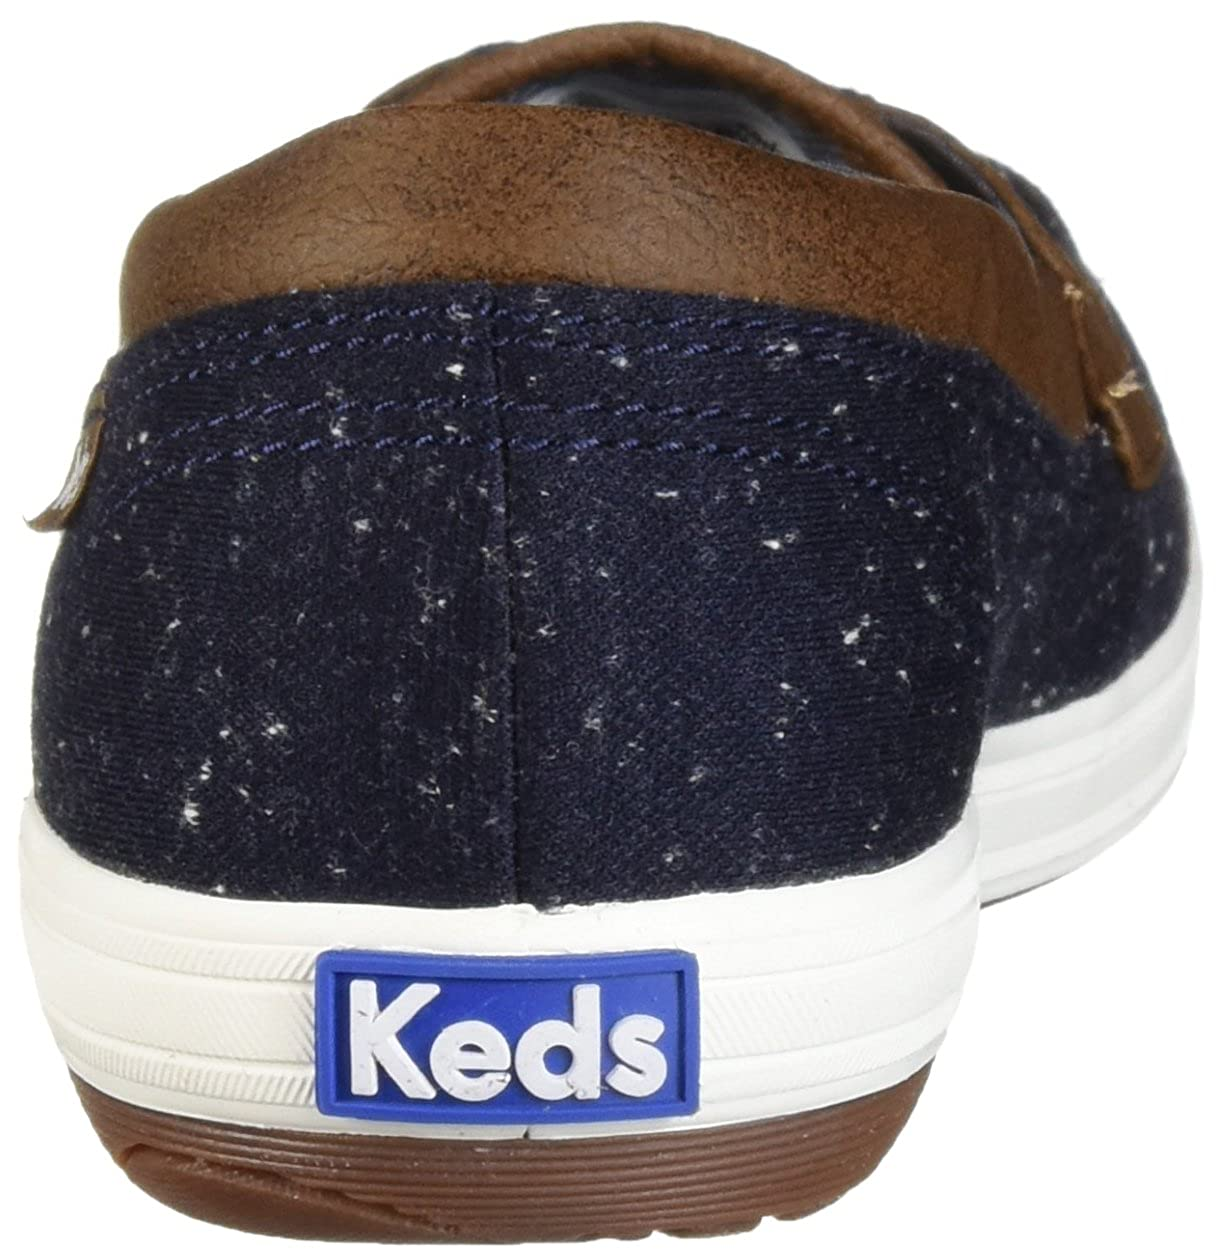 Keds Womens Glimmer Speckled Knit Sneaker